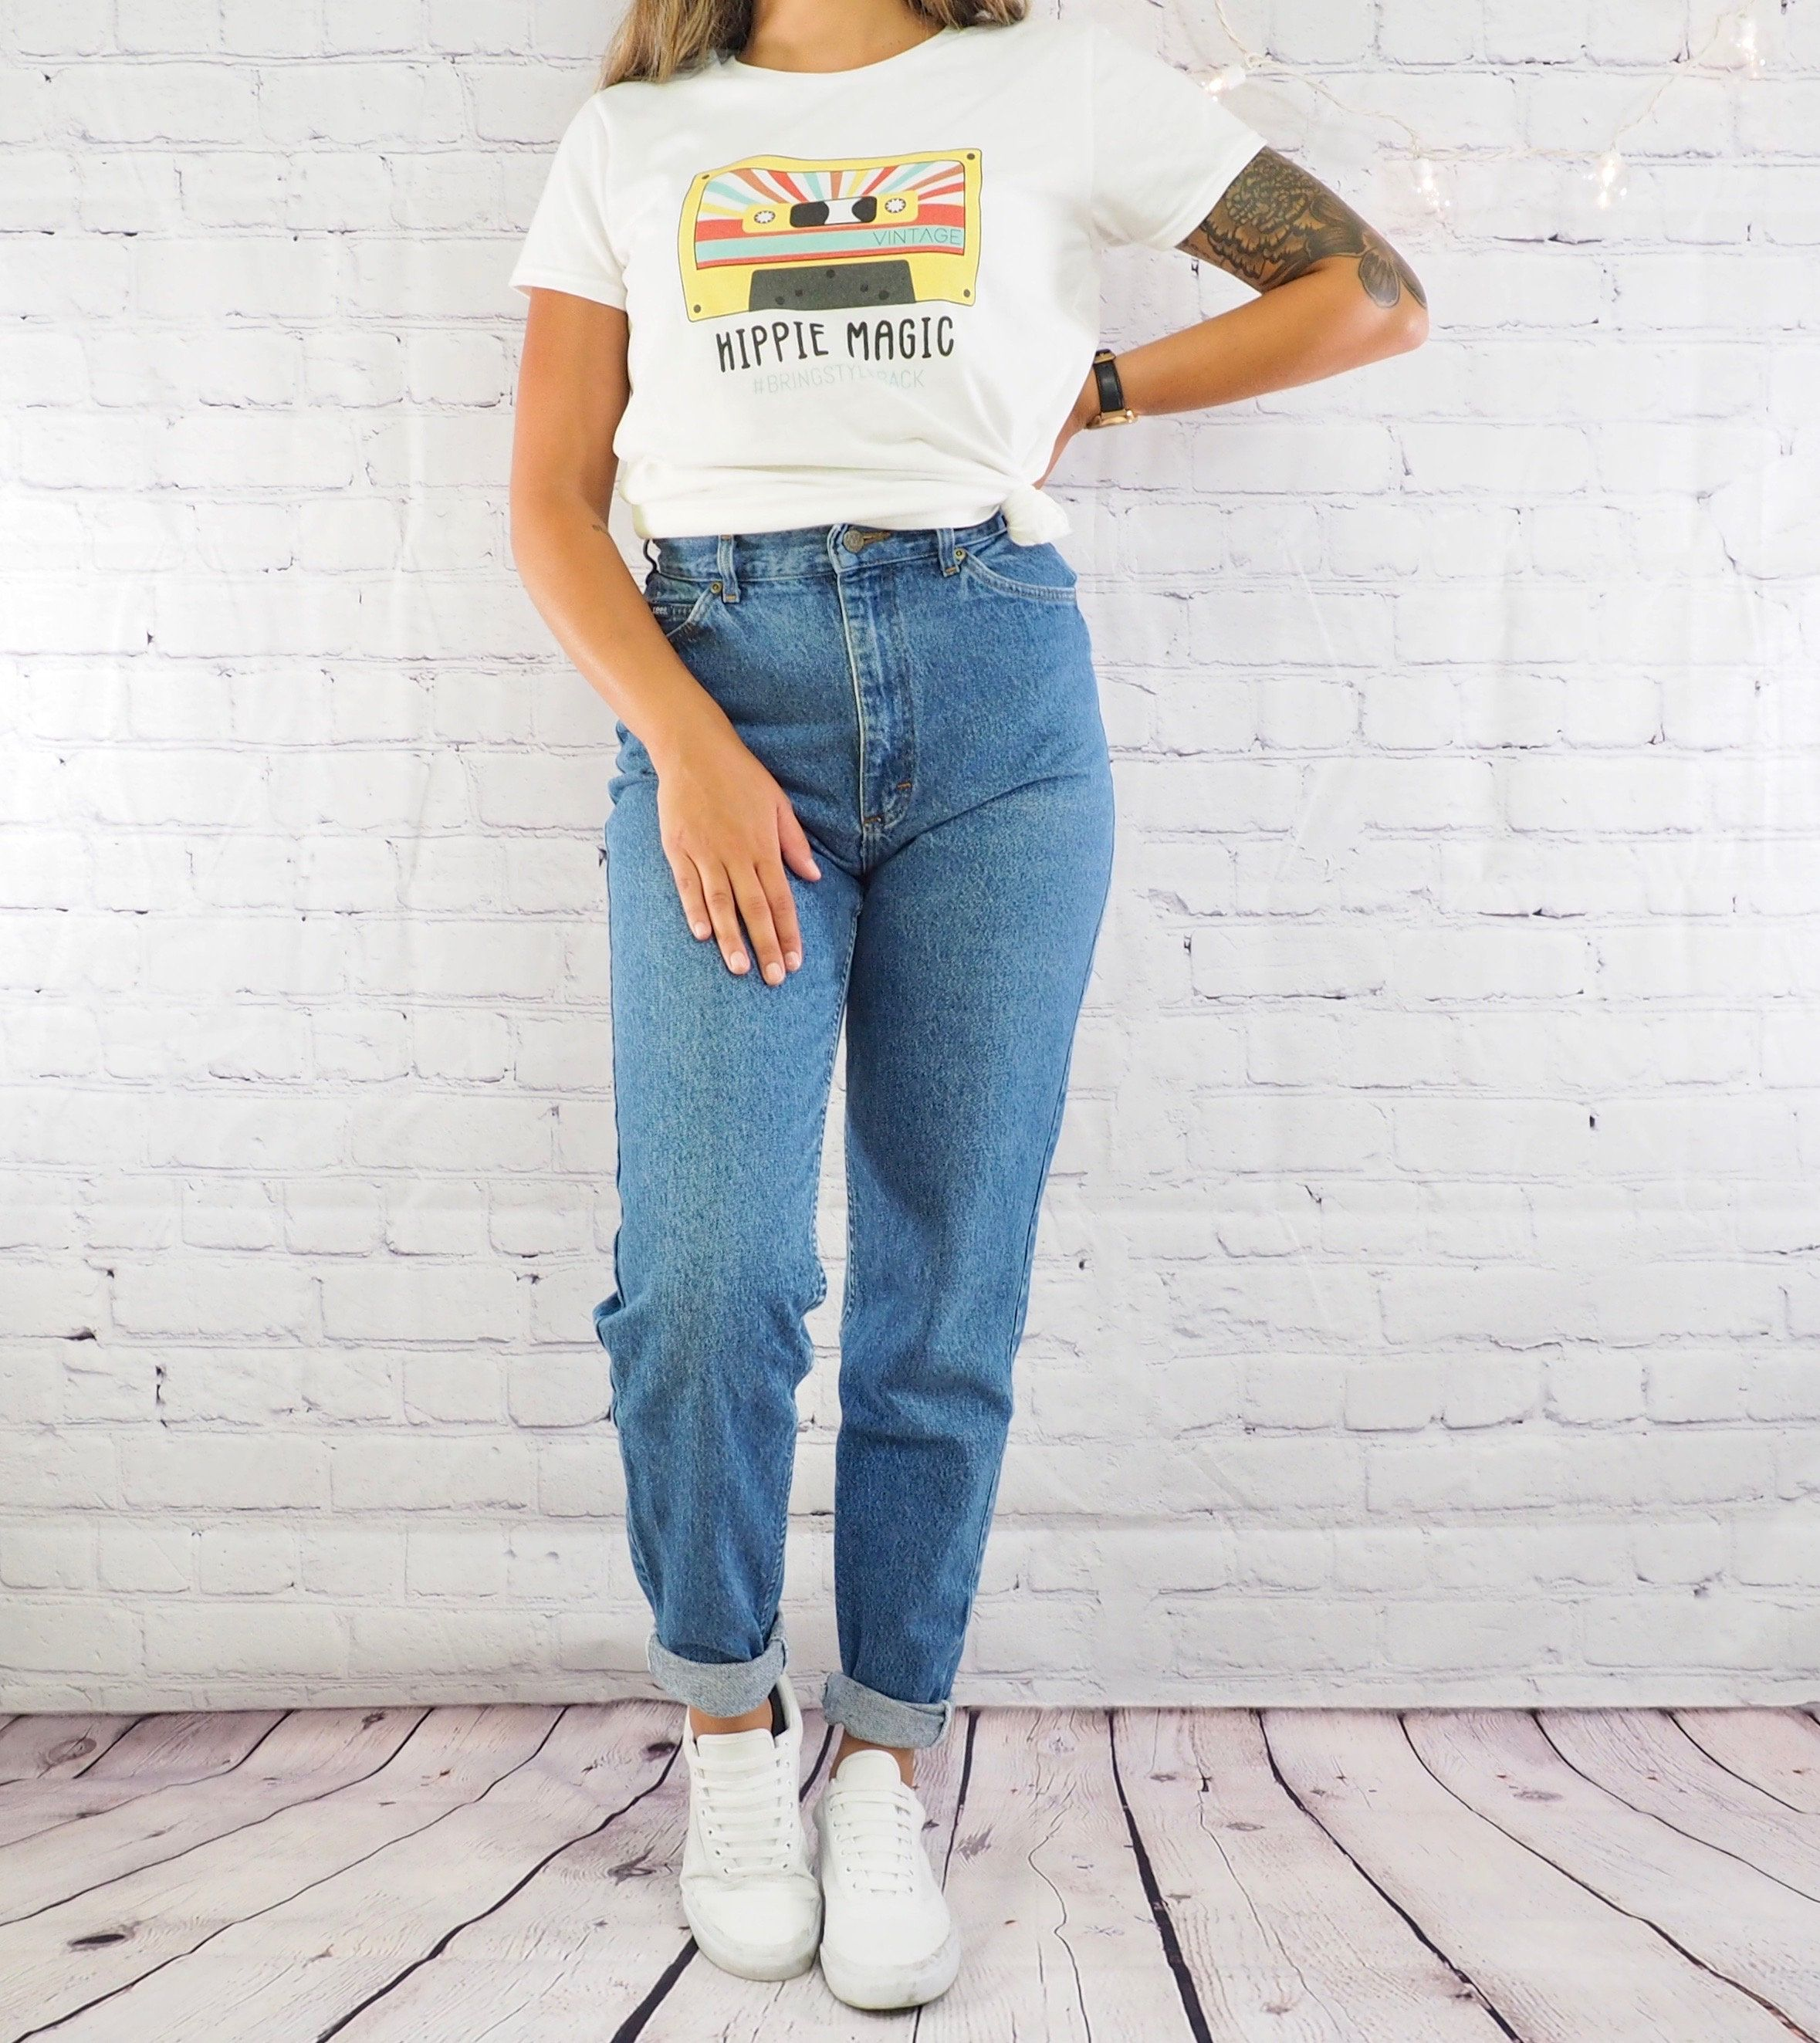 Vintage 90s Lee Jeans Women S High Waisted Mom Jeans Straight Jeans Outfit Mom Jeans High Waisted Mom Jeans